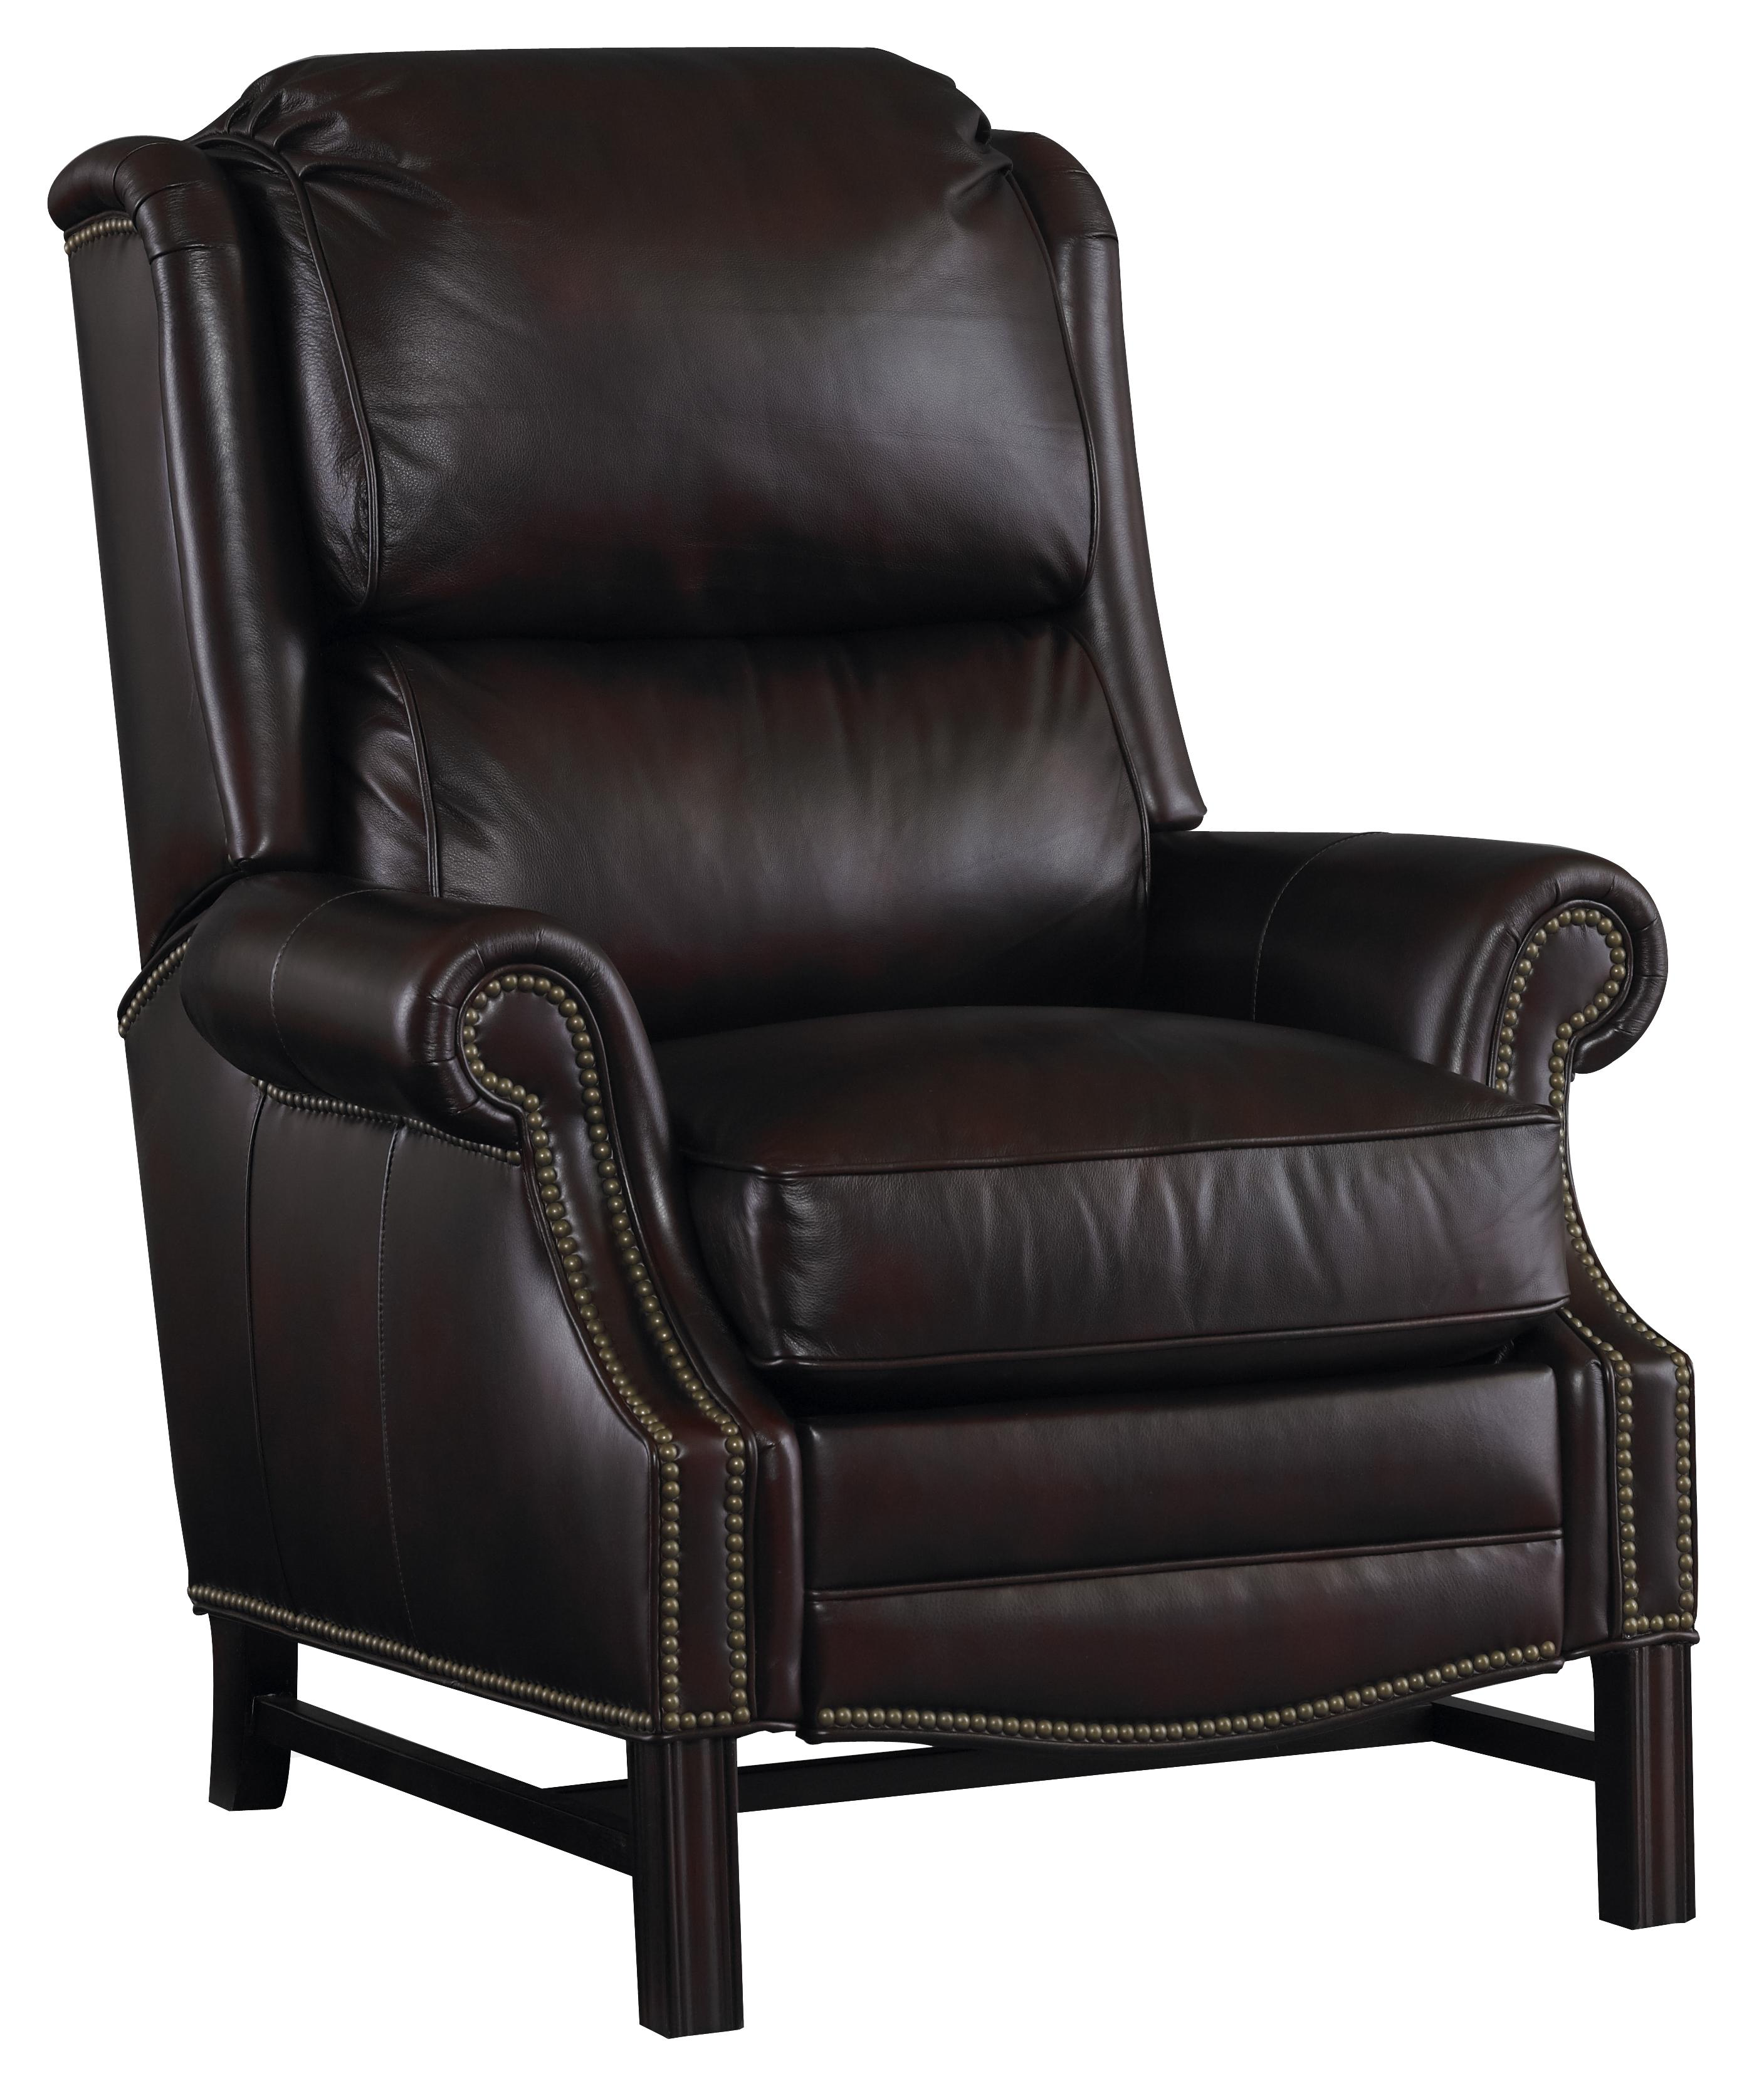 Bradington Young Chairs That Recline Alta High